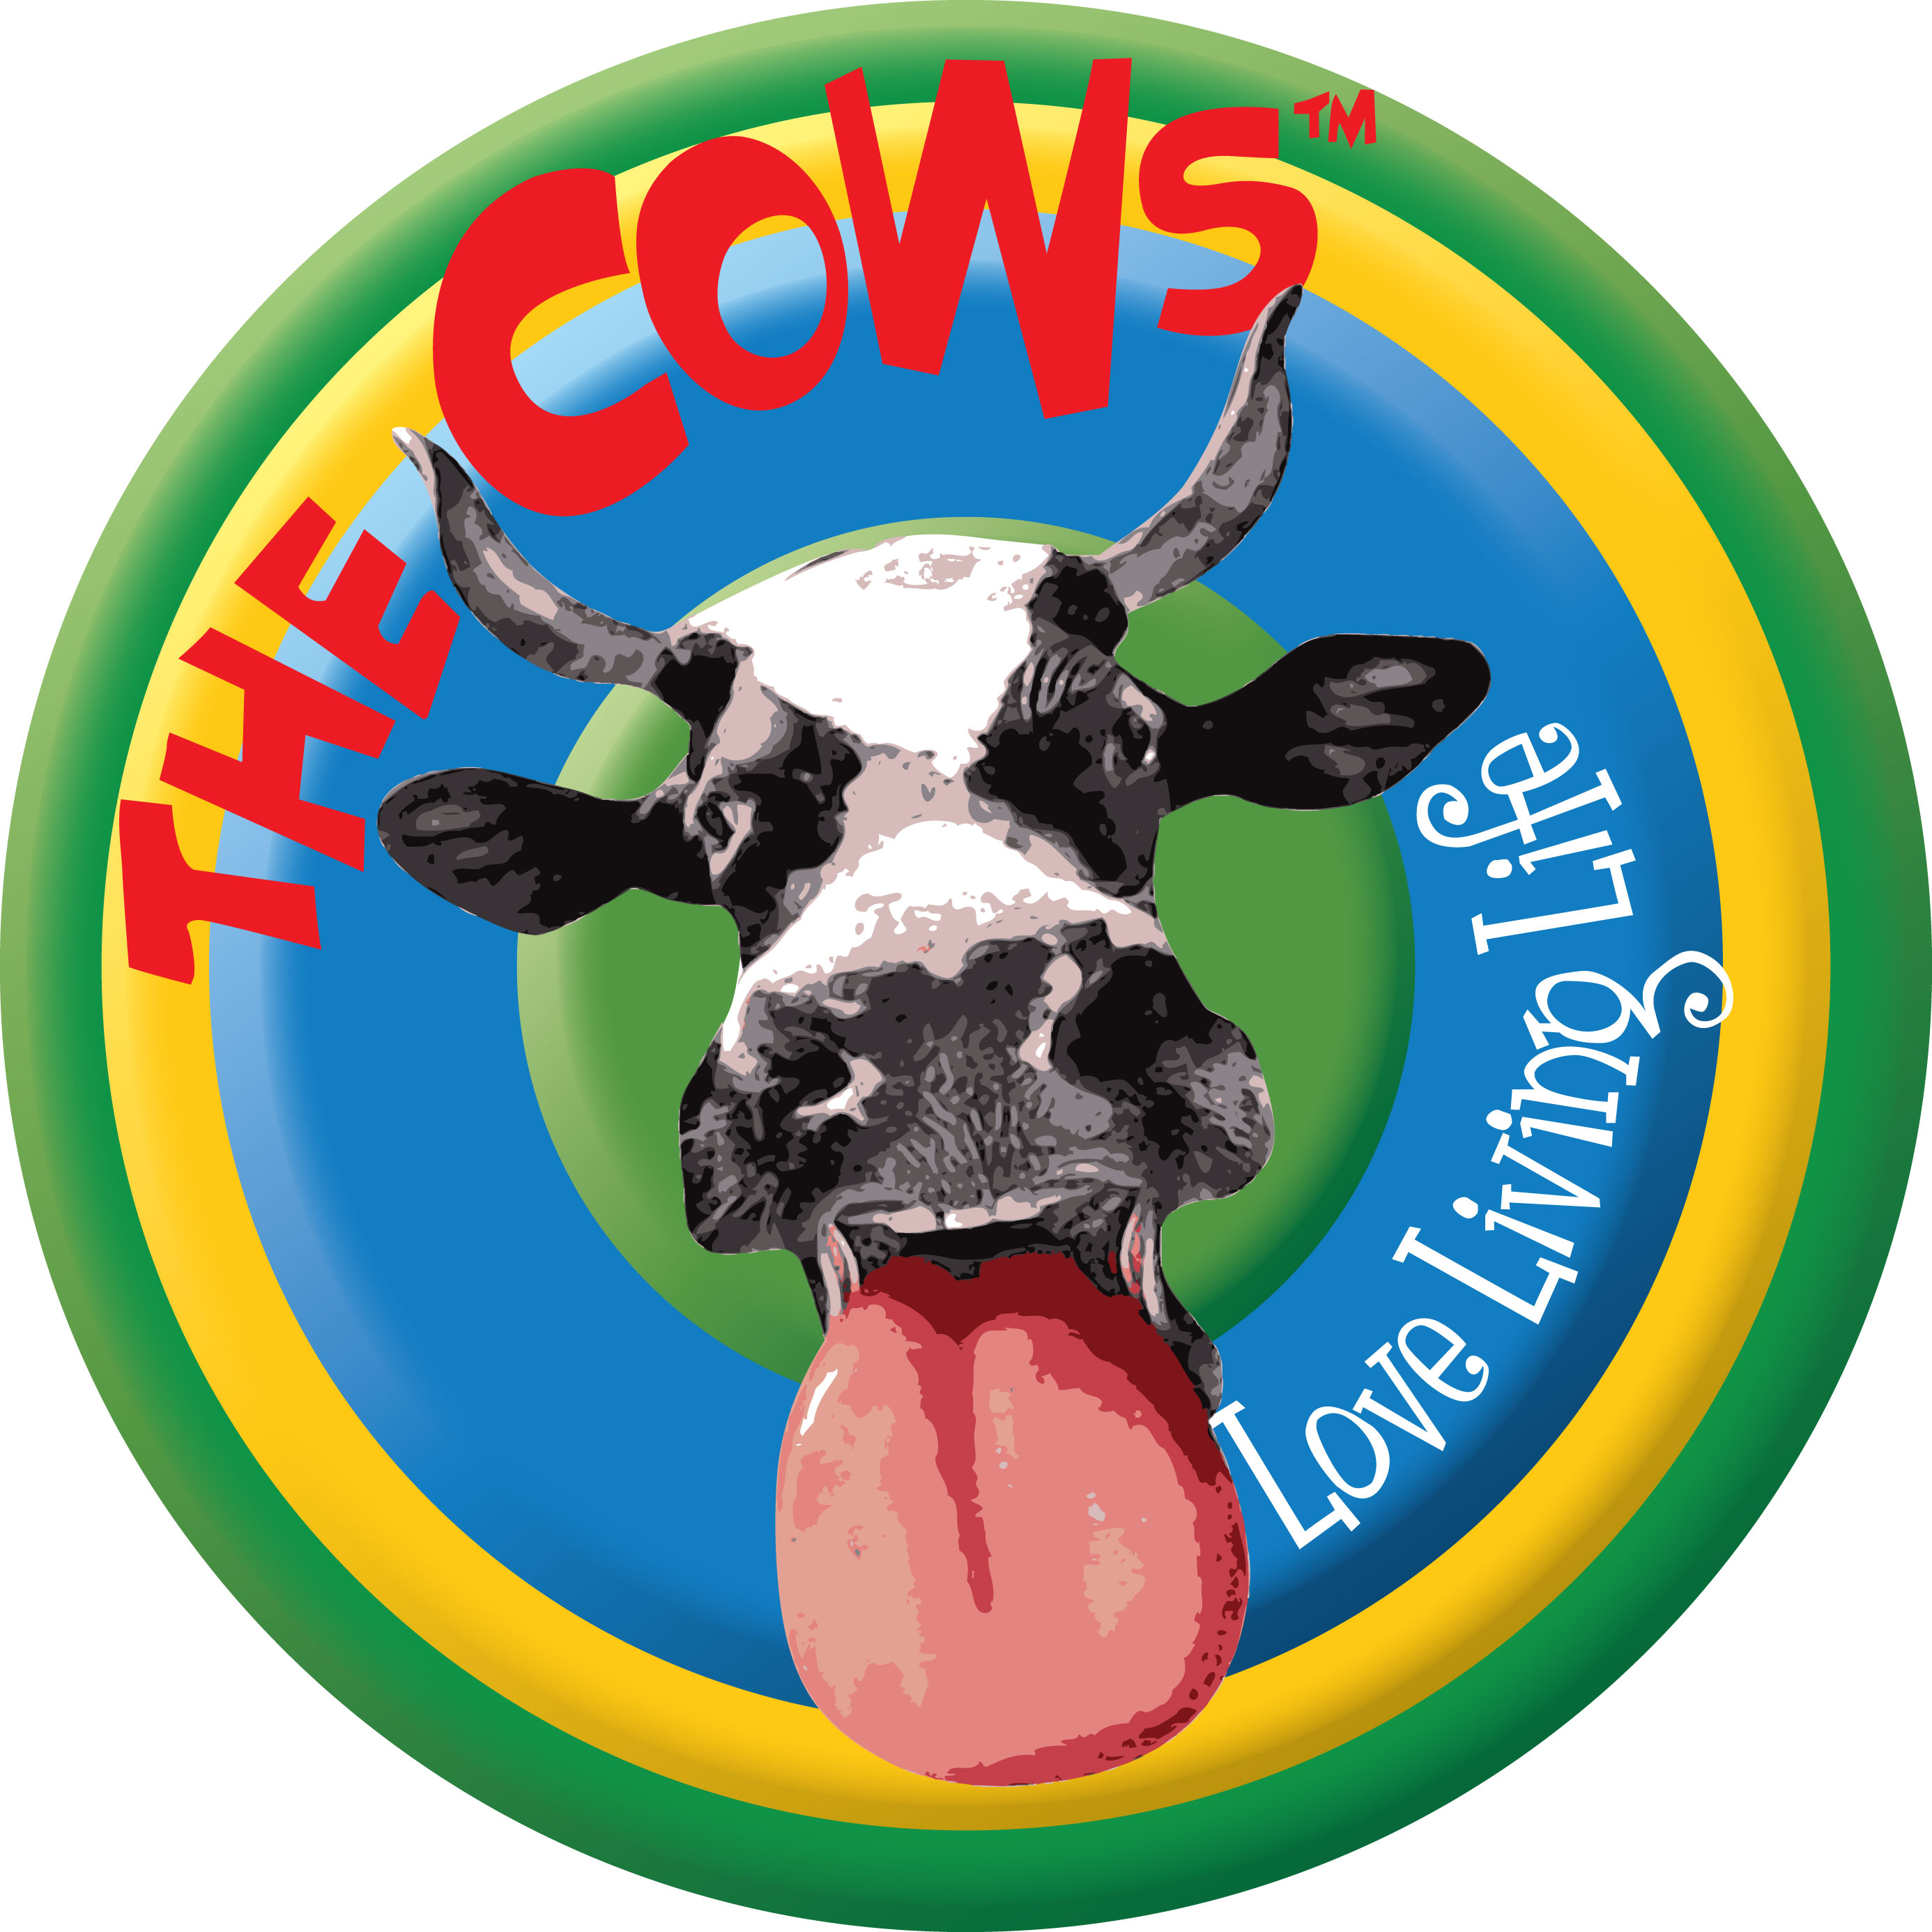 The Cows 100 Miles of Nowhere2016